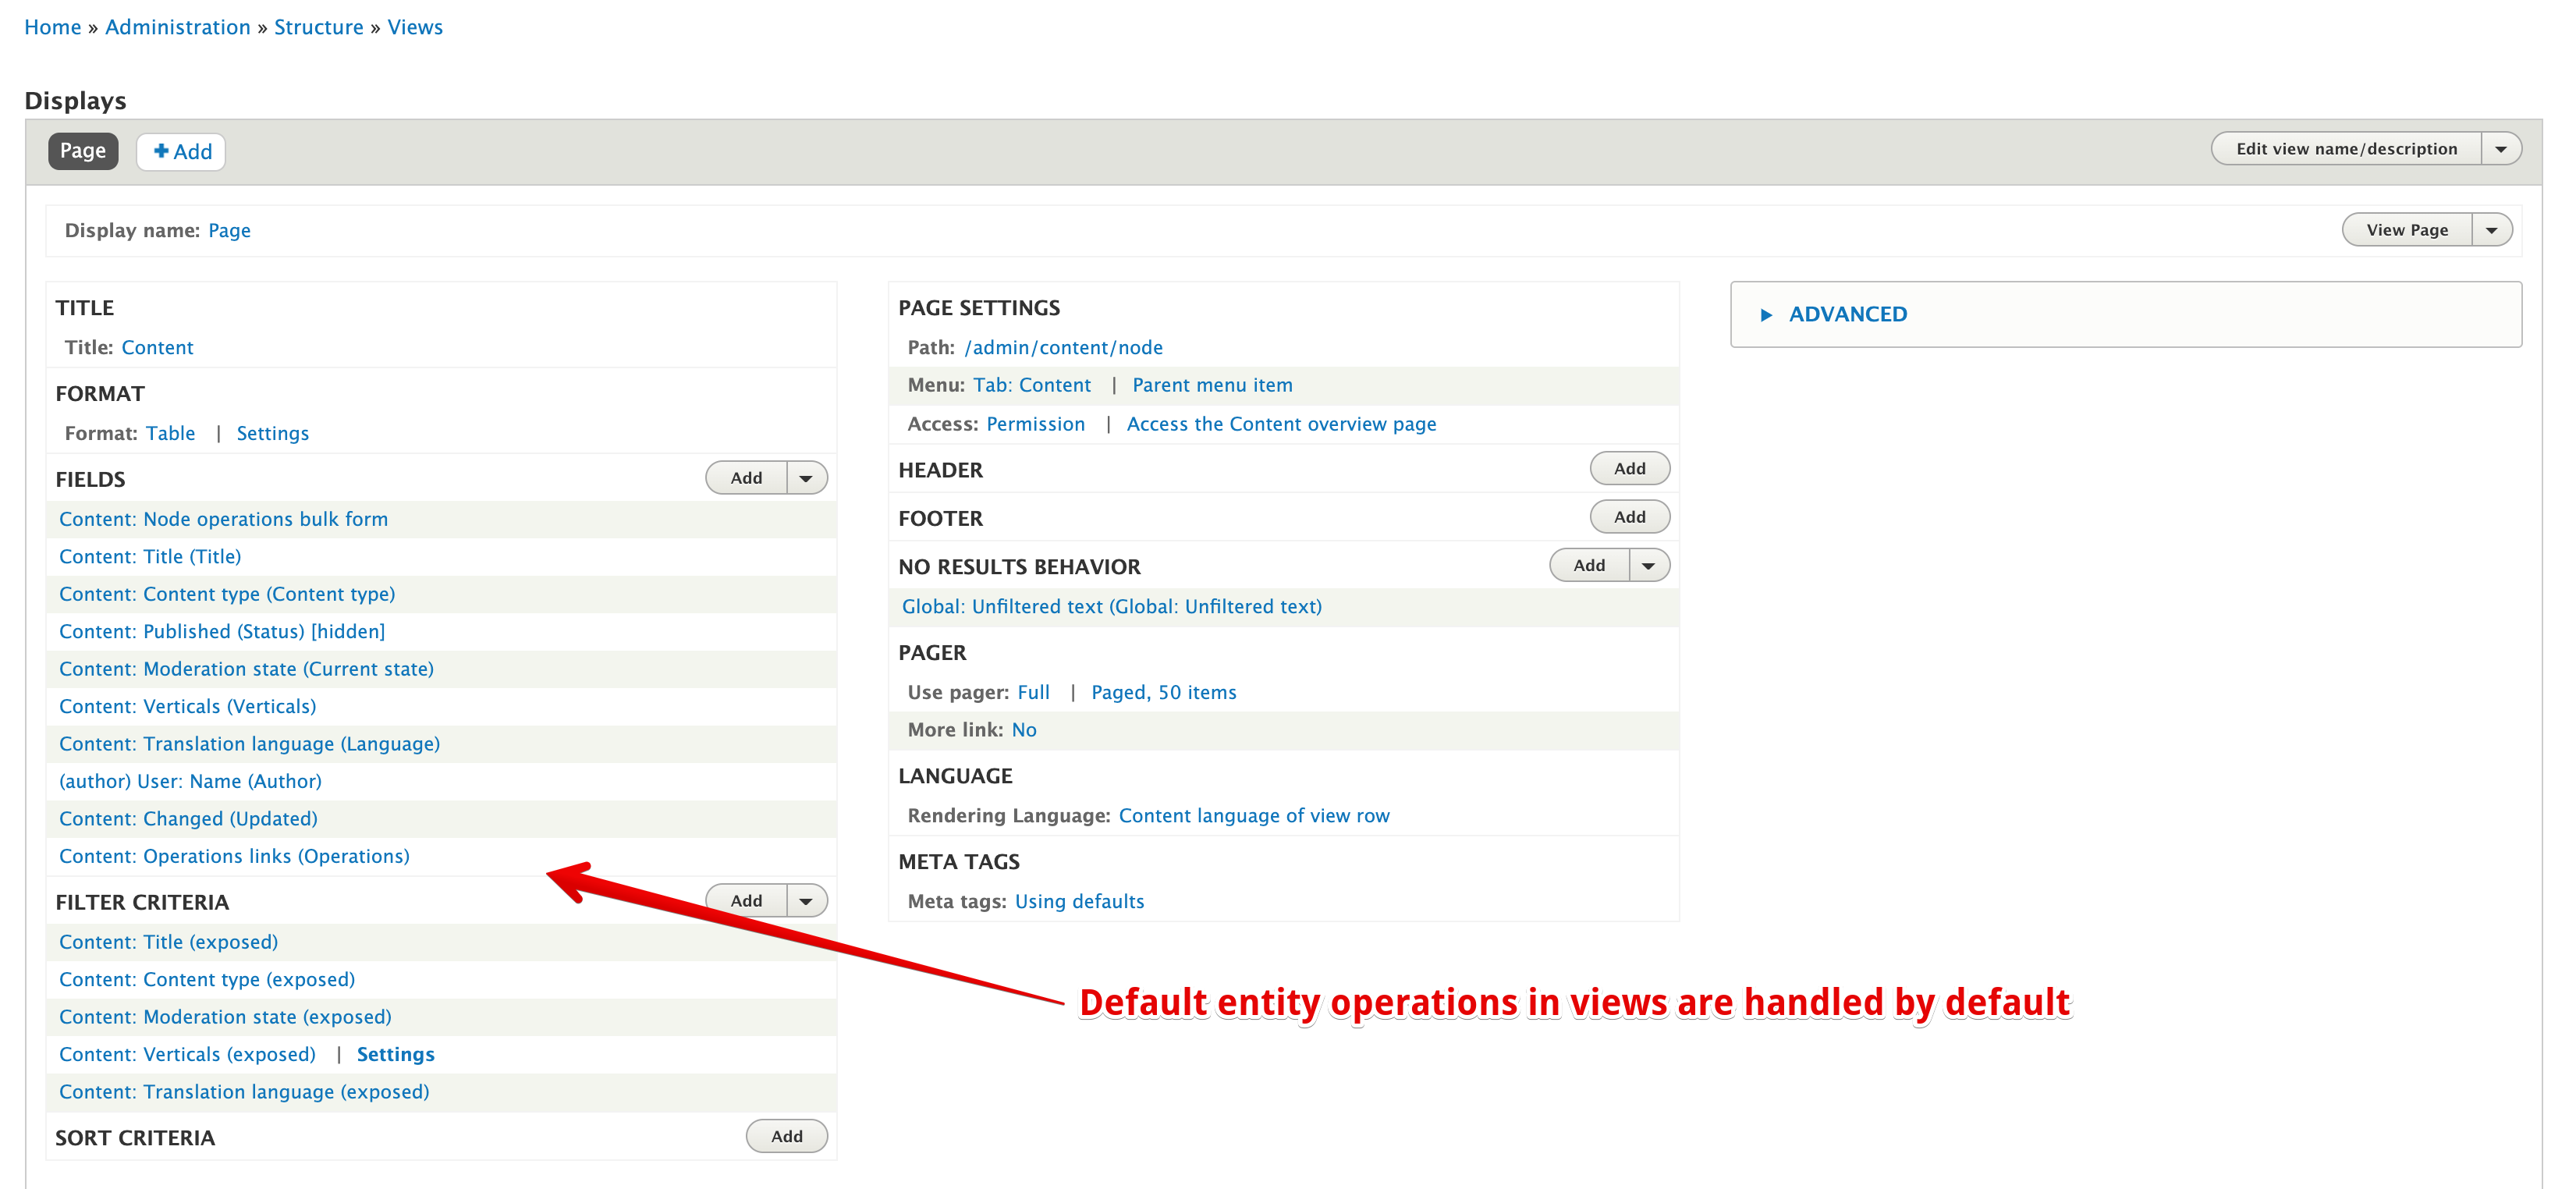 default entity operations in views